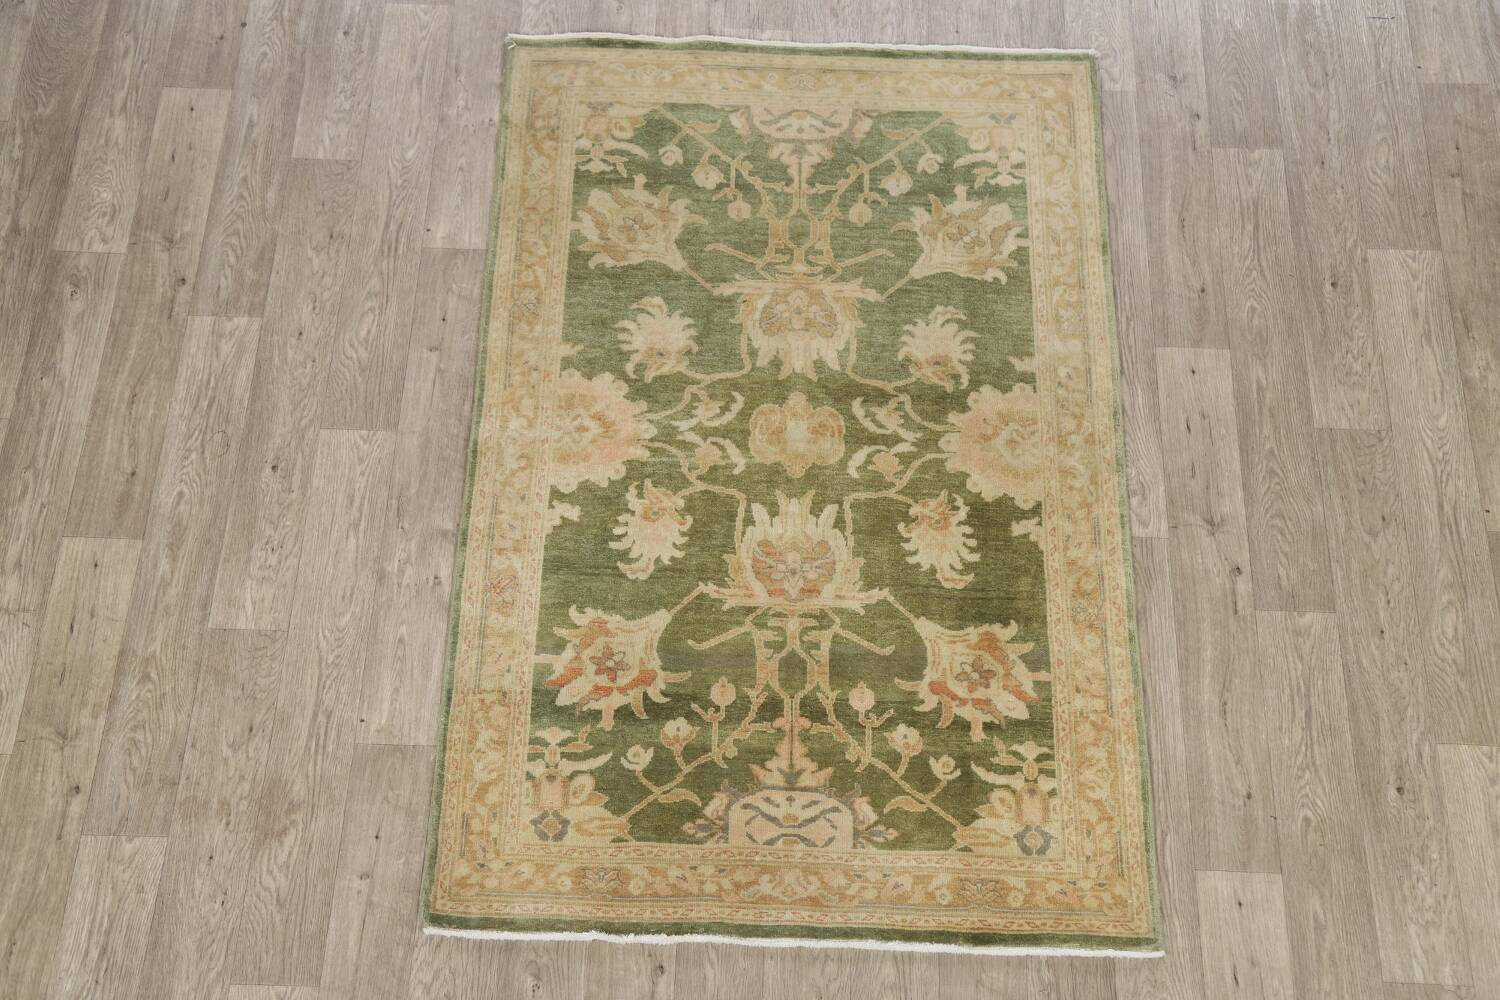 Vegetable Dye Floral Green Oushak Egyptian Area Rug 4x6 image 2